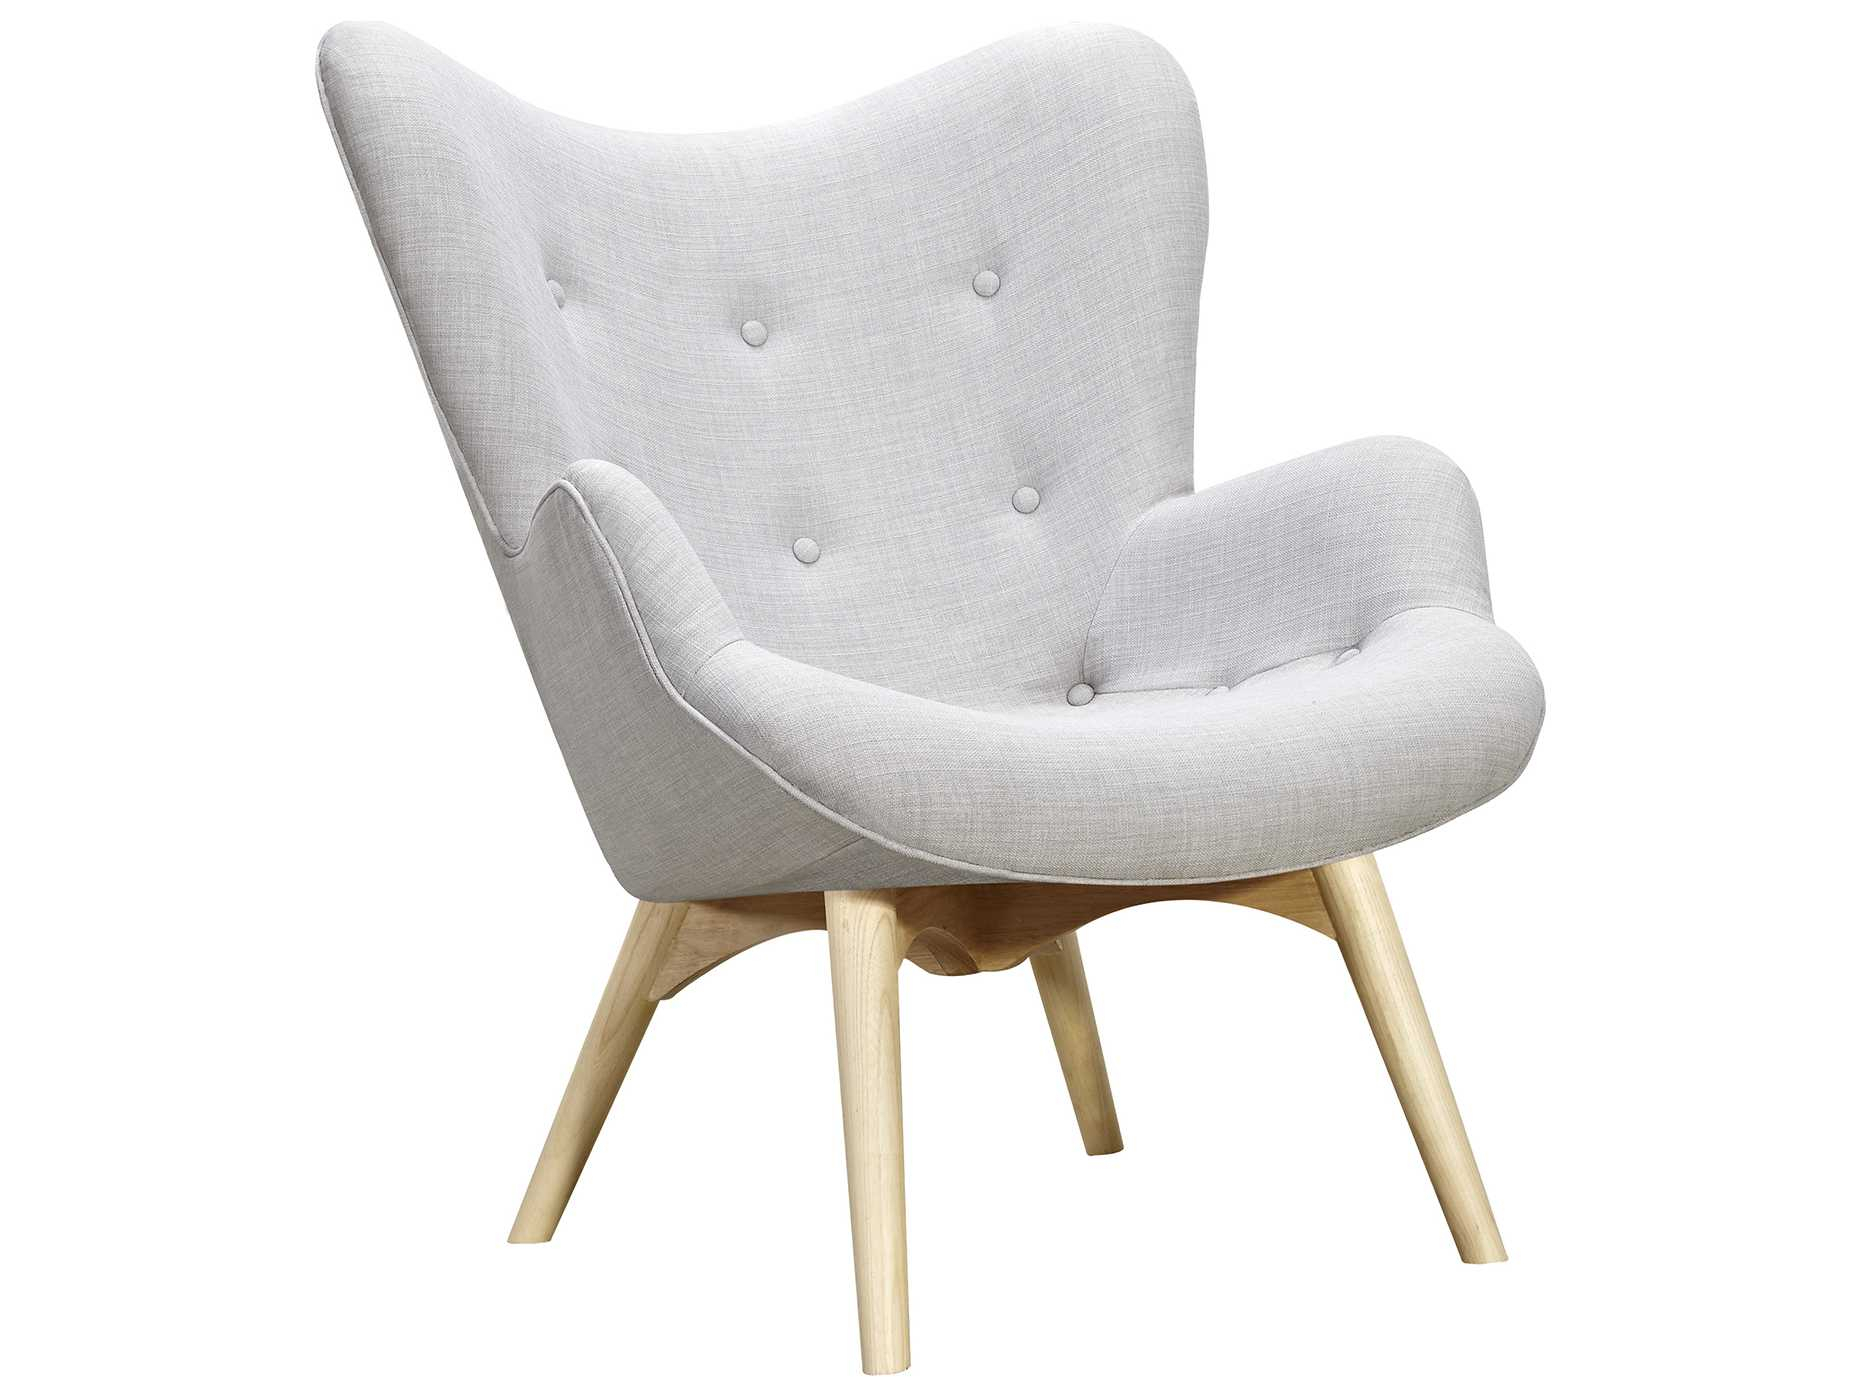 Nyekoncept Aiden Glacier White Accent Chair & Ottoman With Natural Regarding Aidan Ii Swivel Accent Chairs (View 18 of 25)